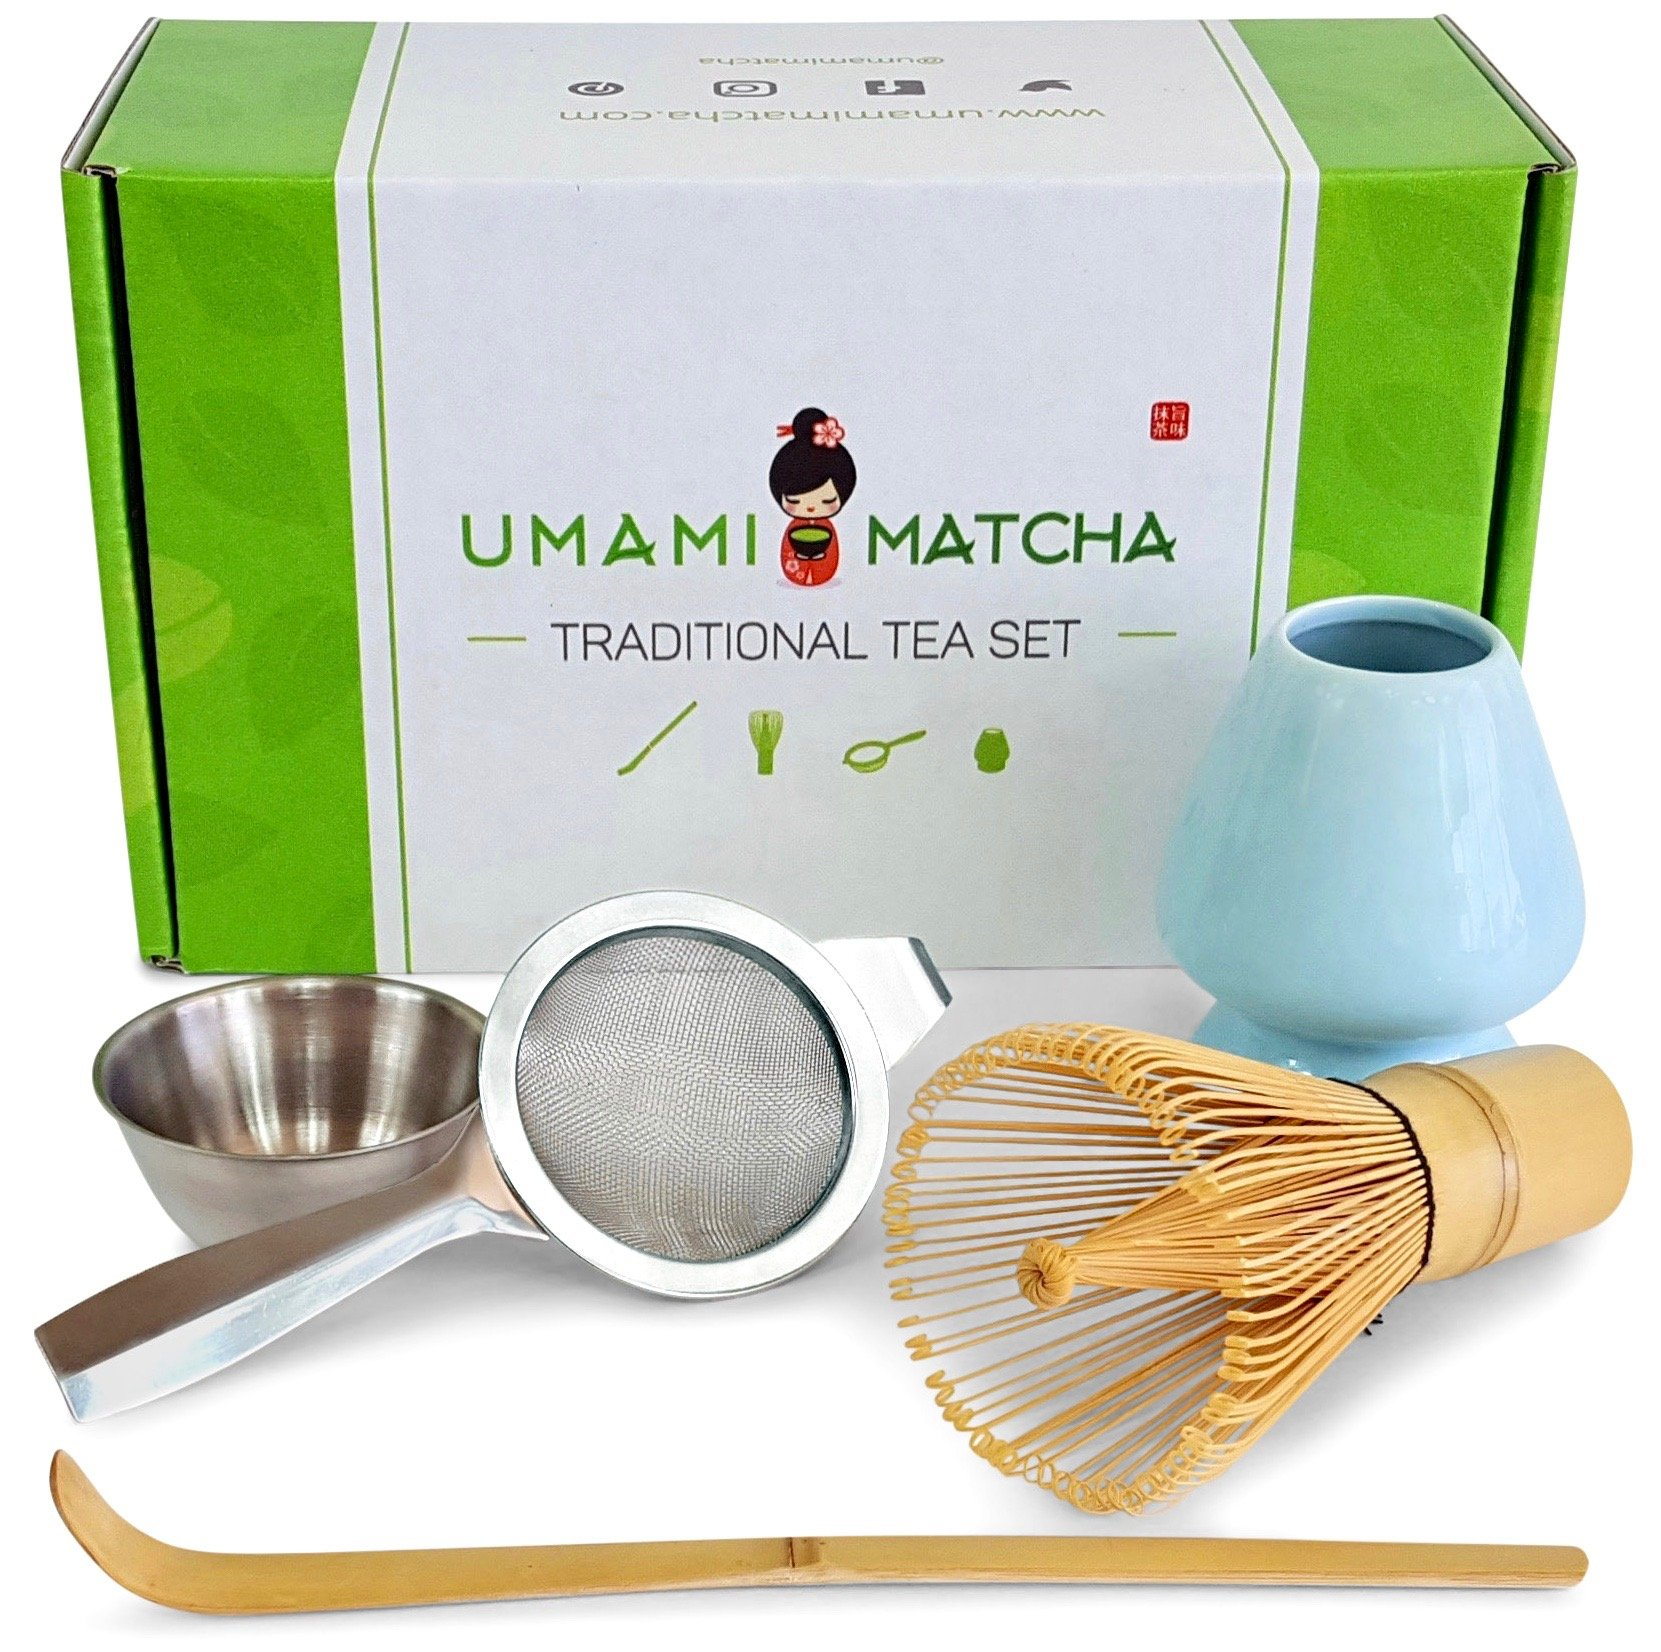 UMAMI MATCHA Tea Set | Traditional Bamboo Matcha Whisk & Scoop | Stainless Steel Sifter | Ceramic Blue Whisk Holder | Best Authentic Matcha Kit For Japanese Matcha Green Tea Ceremony